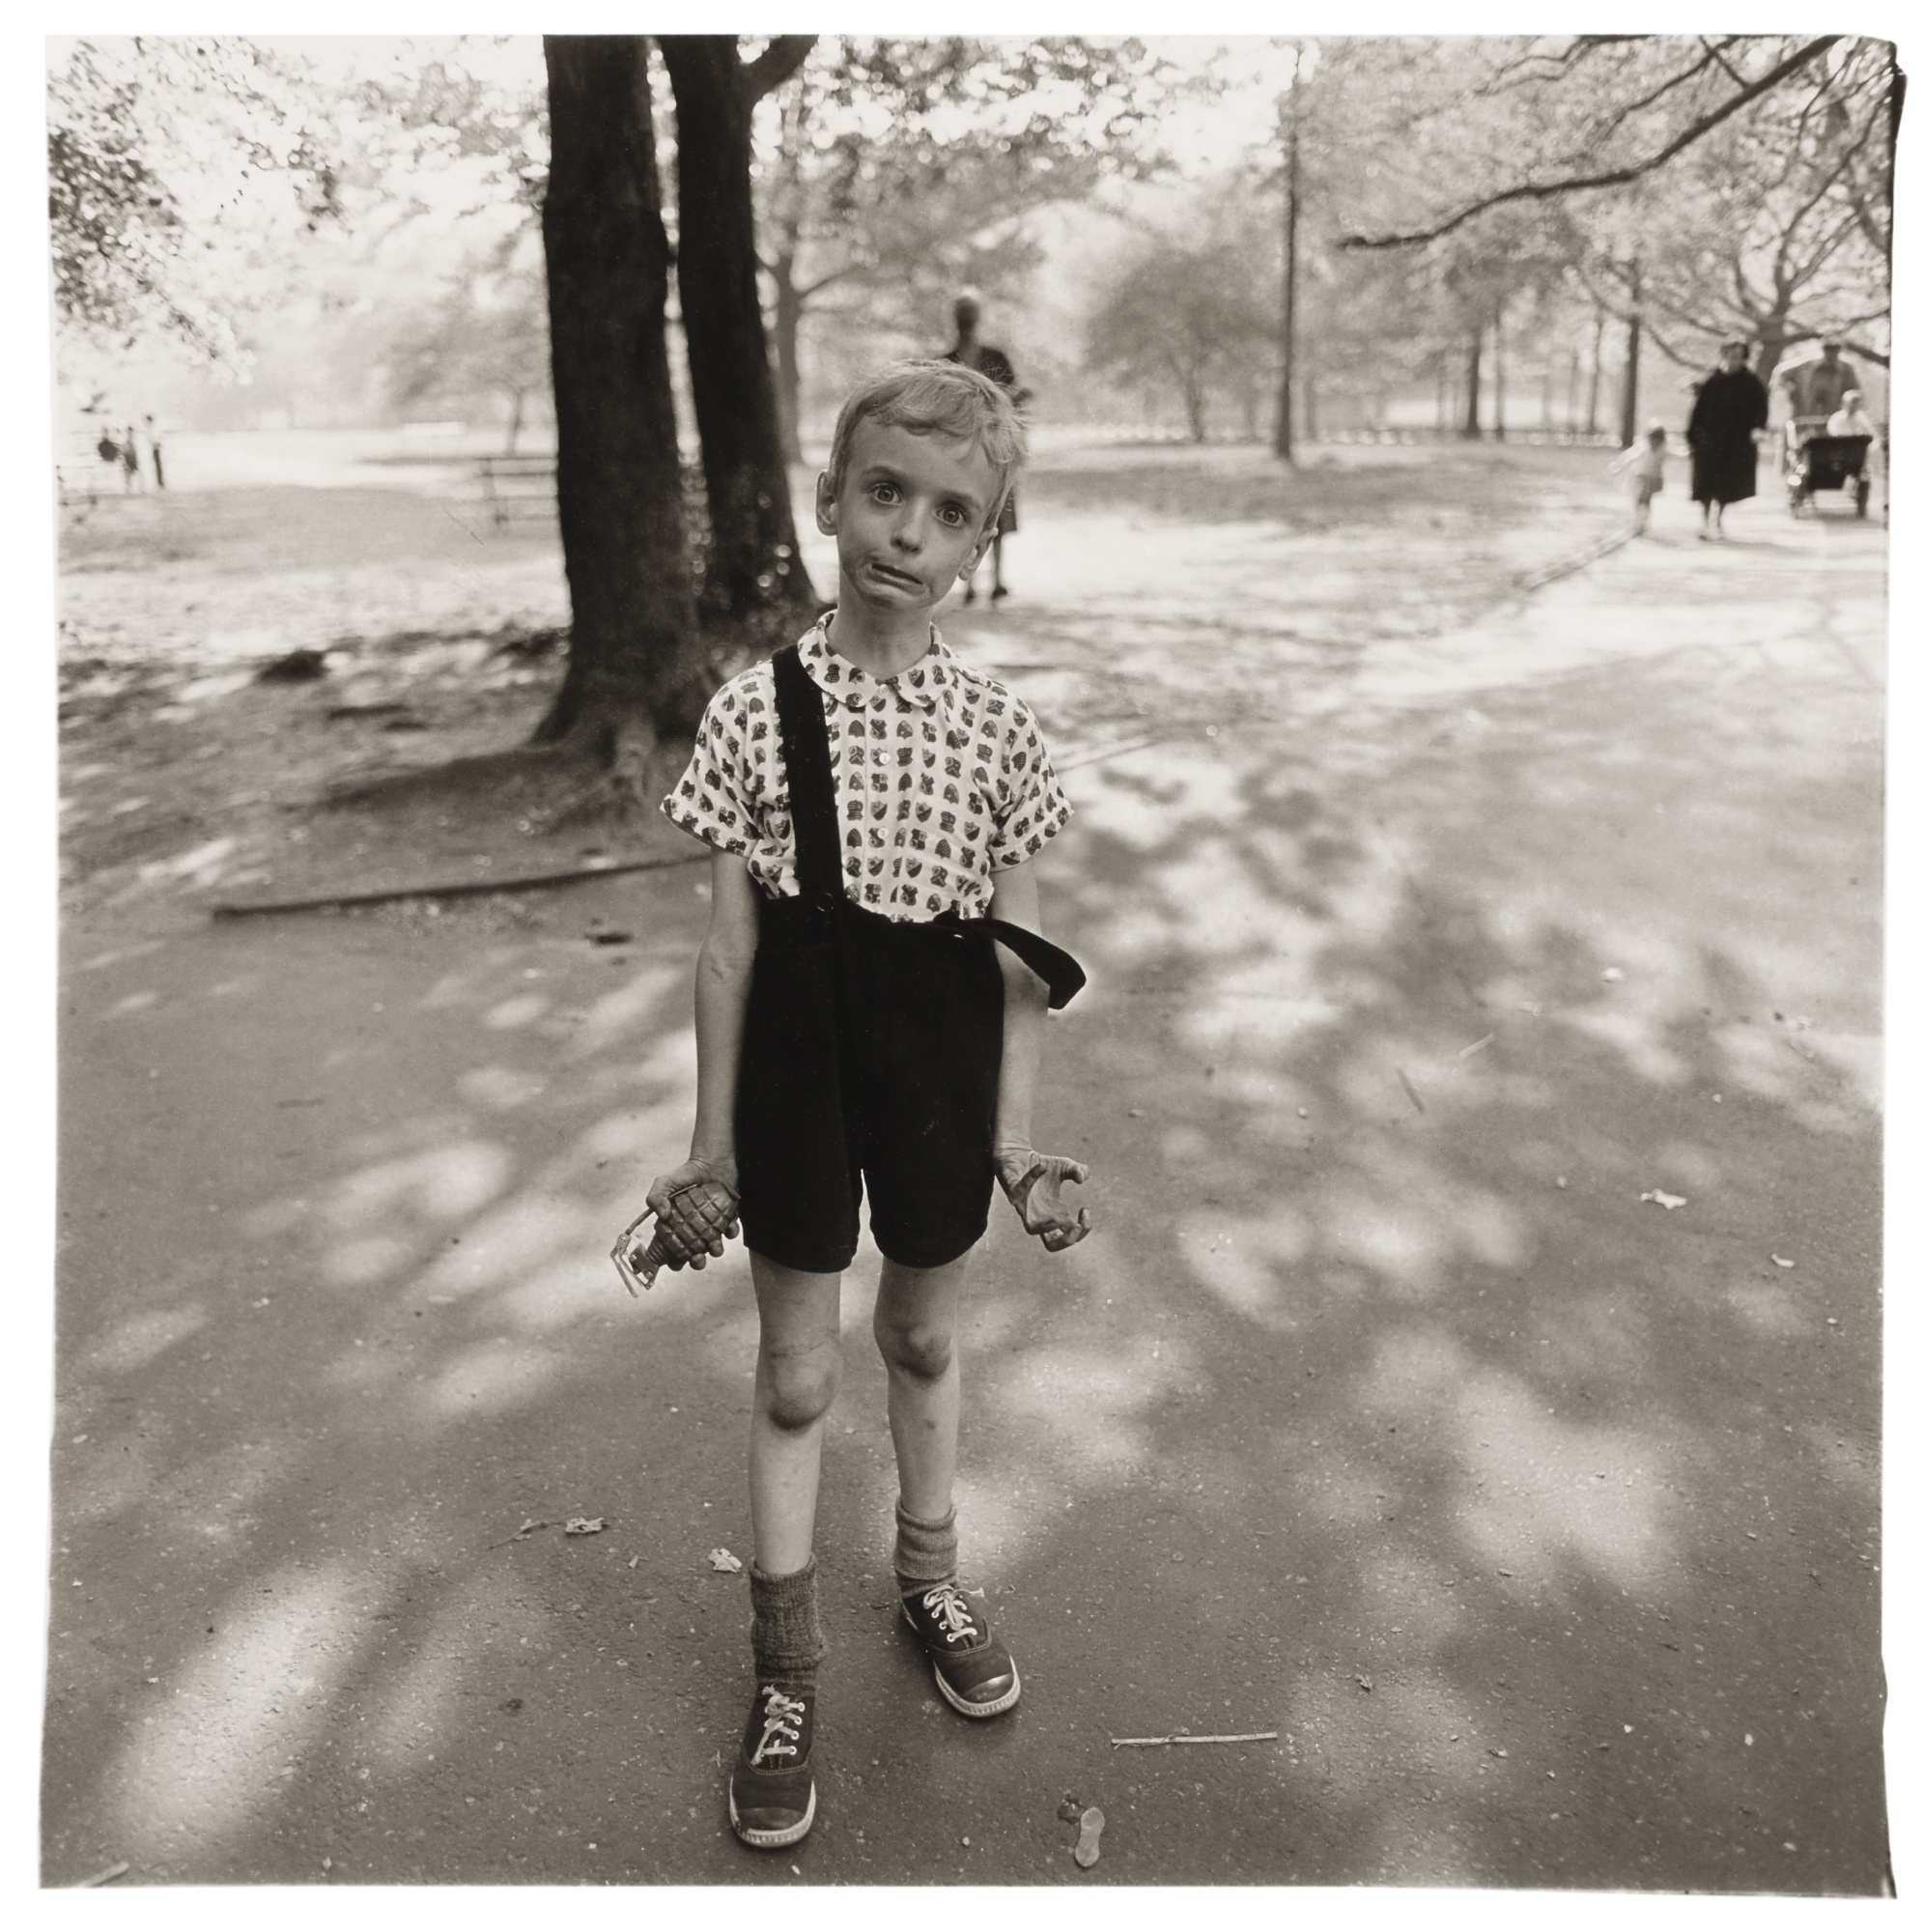 Child with a toy hand grenade in Central Park, NYC, 1962